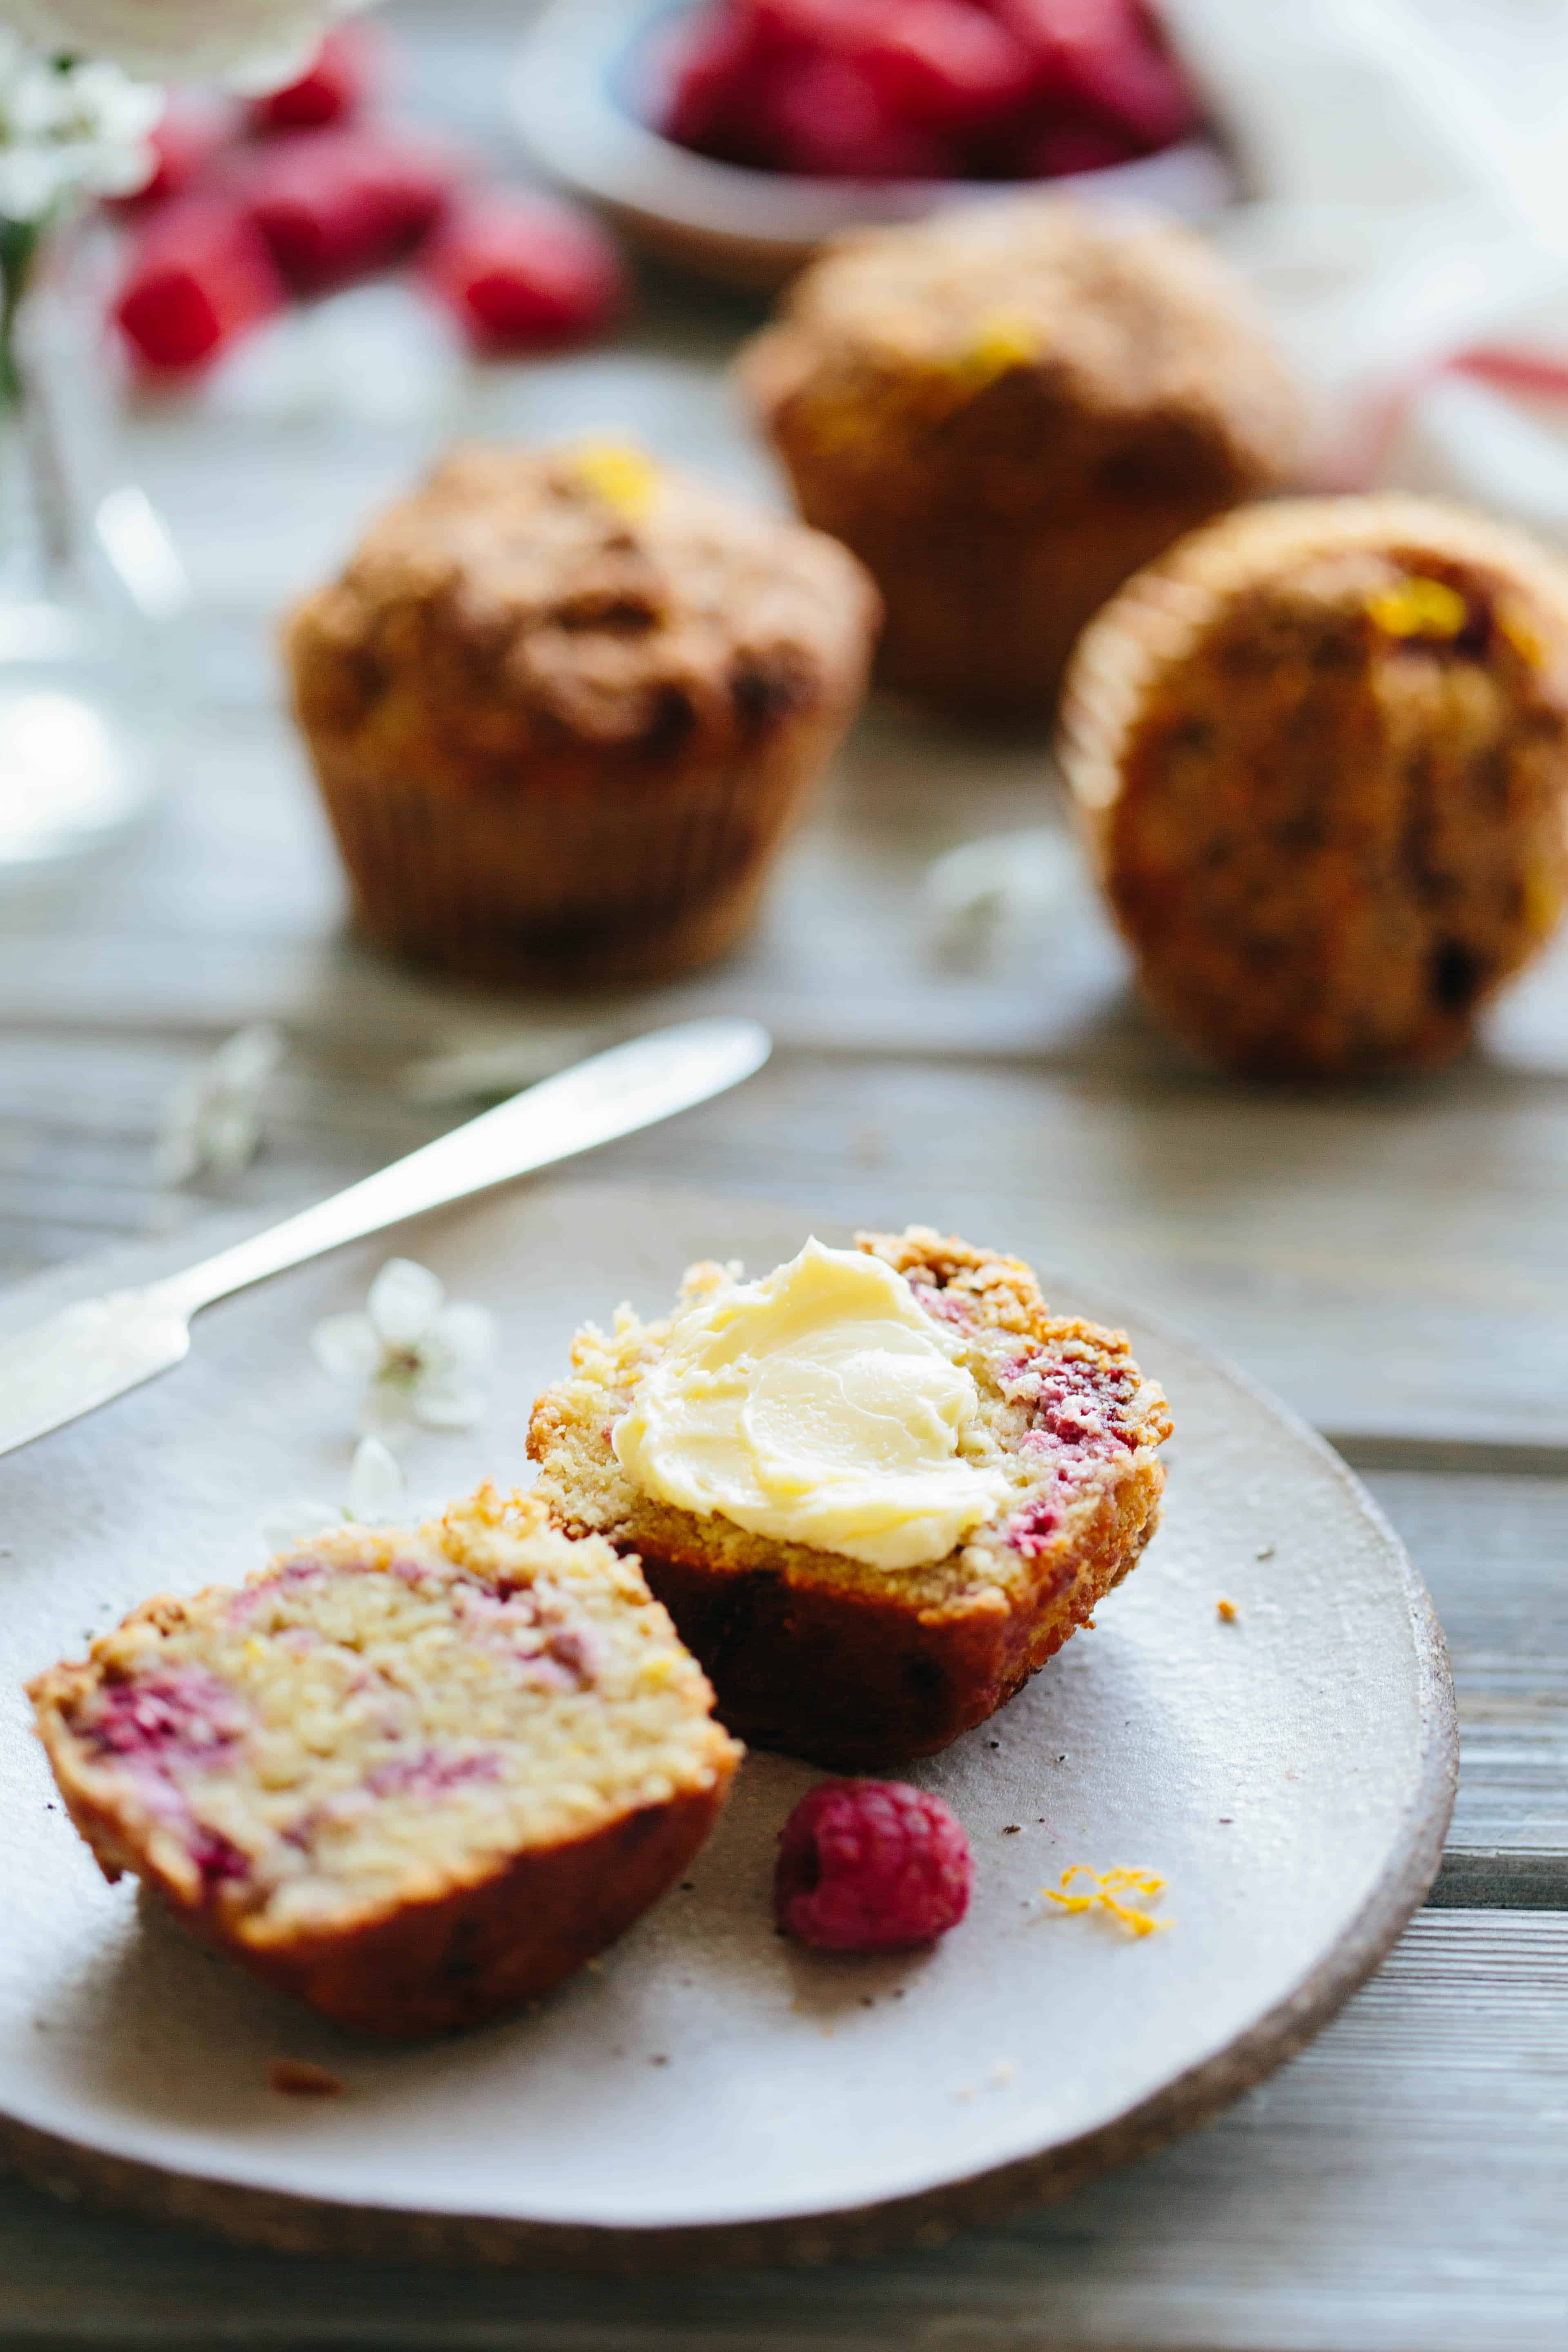 Close up of a Paleo orange raspberry muffin split in half and buttered.